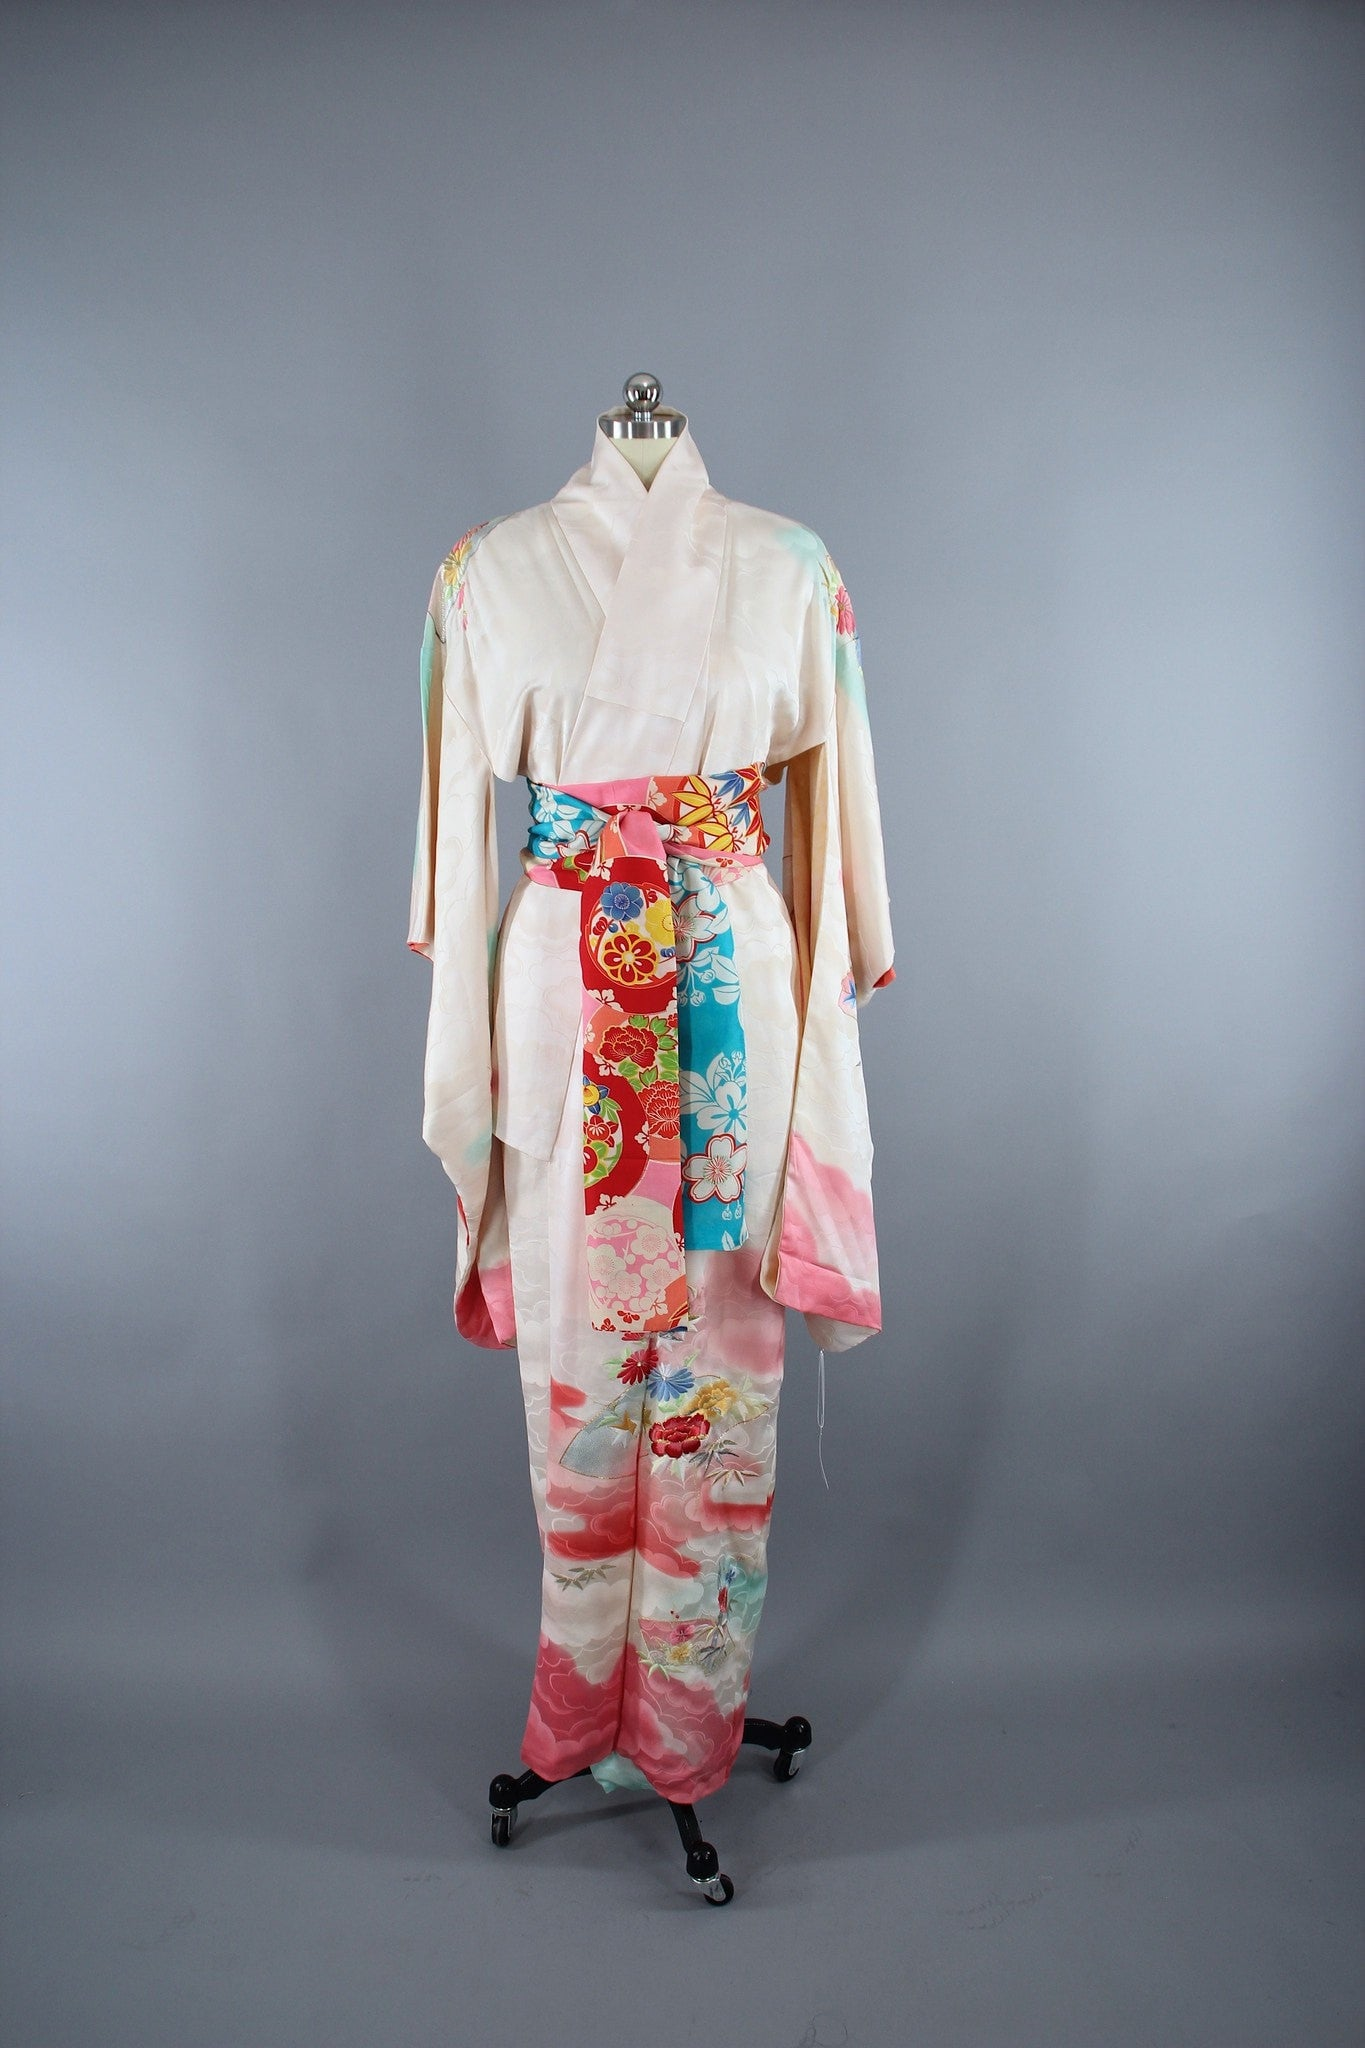 1960s Vintage Silk Kimono Robe Furisode in White Ombre Pink Clouds with Floral Embroidery Kimono ThisBlueBird